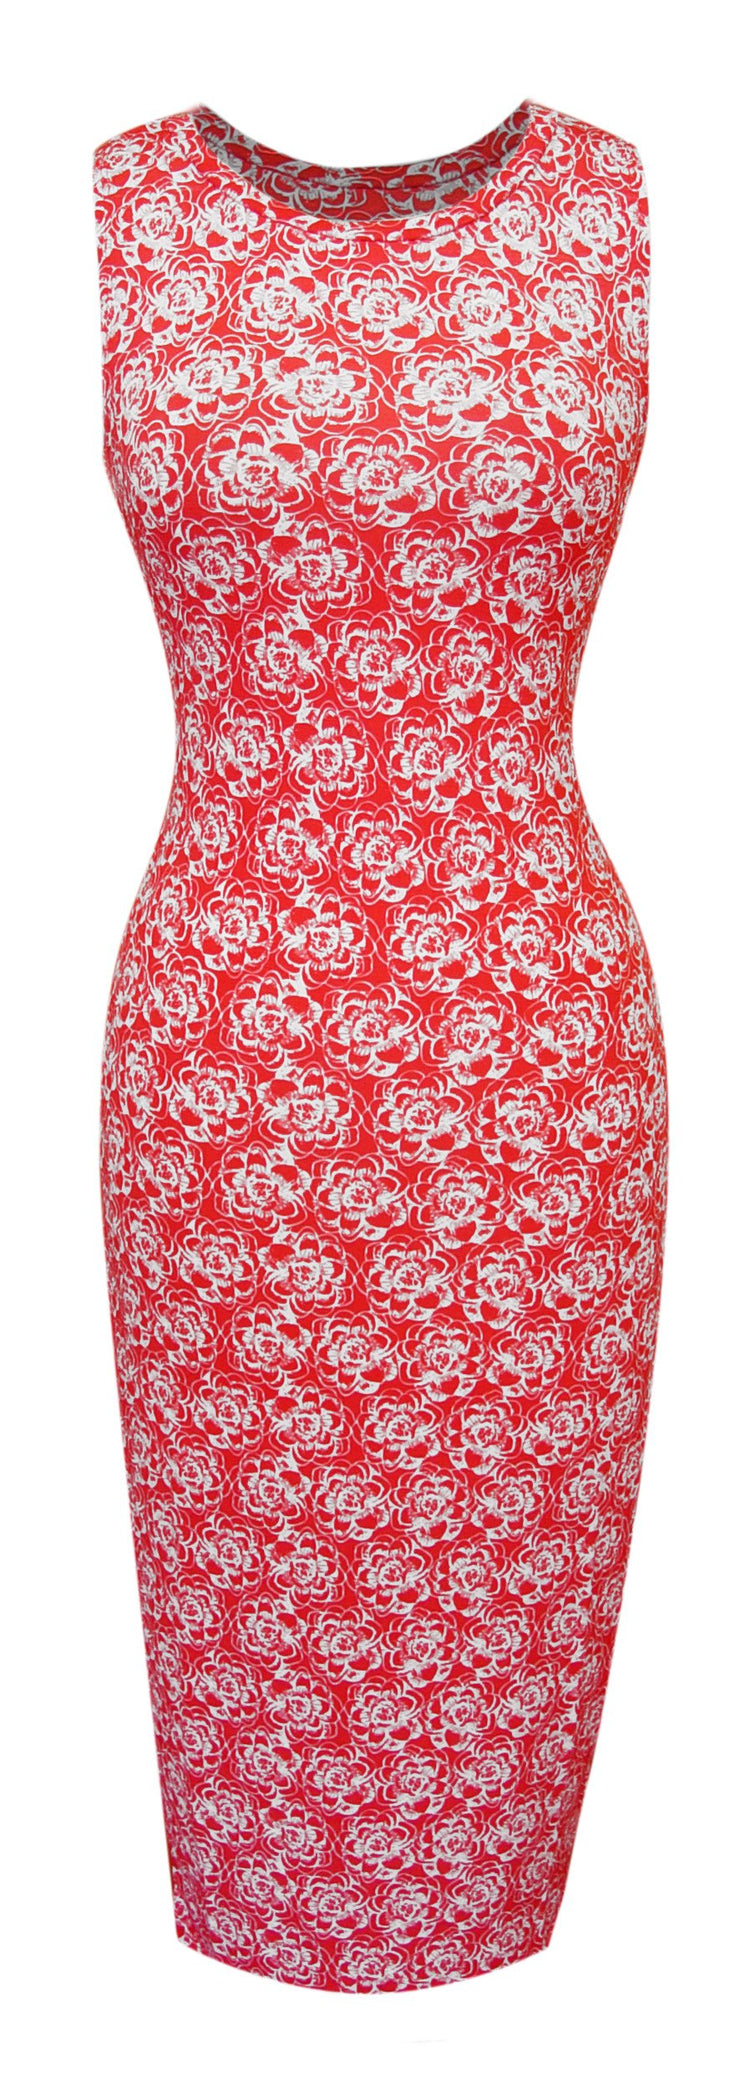 A1592-Floral-BodyconDress-Rose-Med-JG